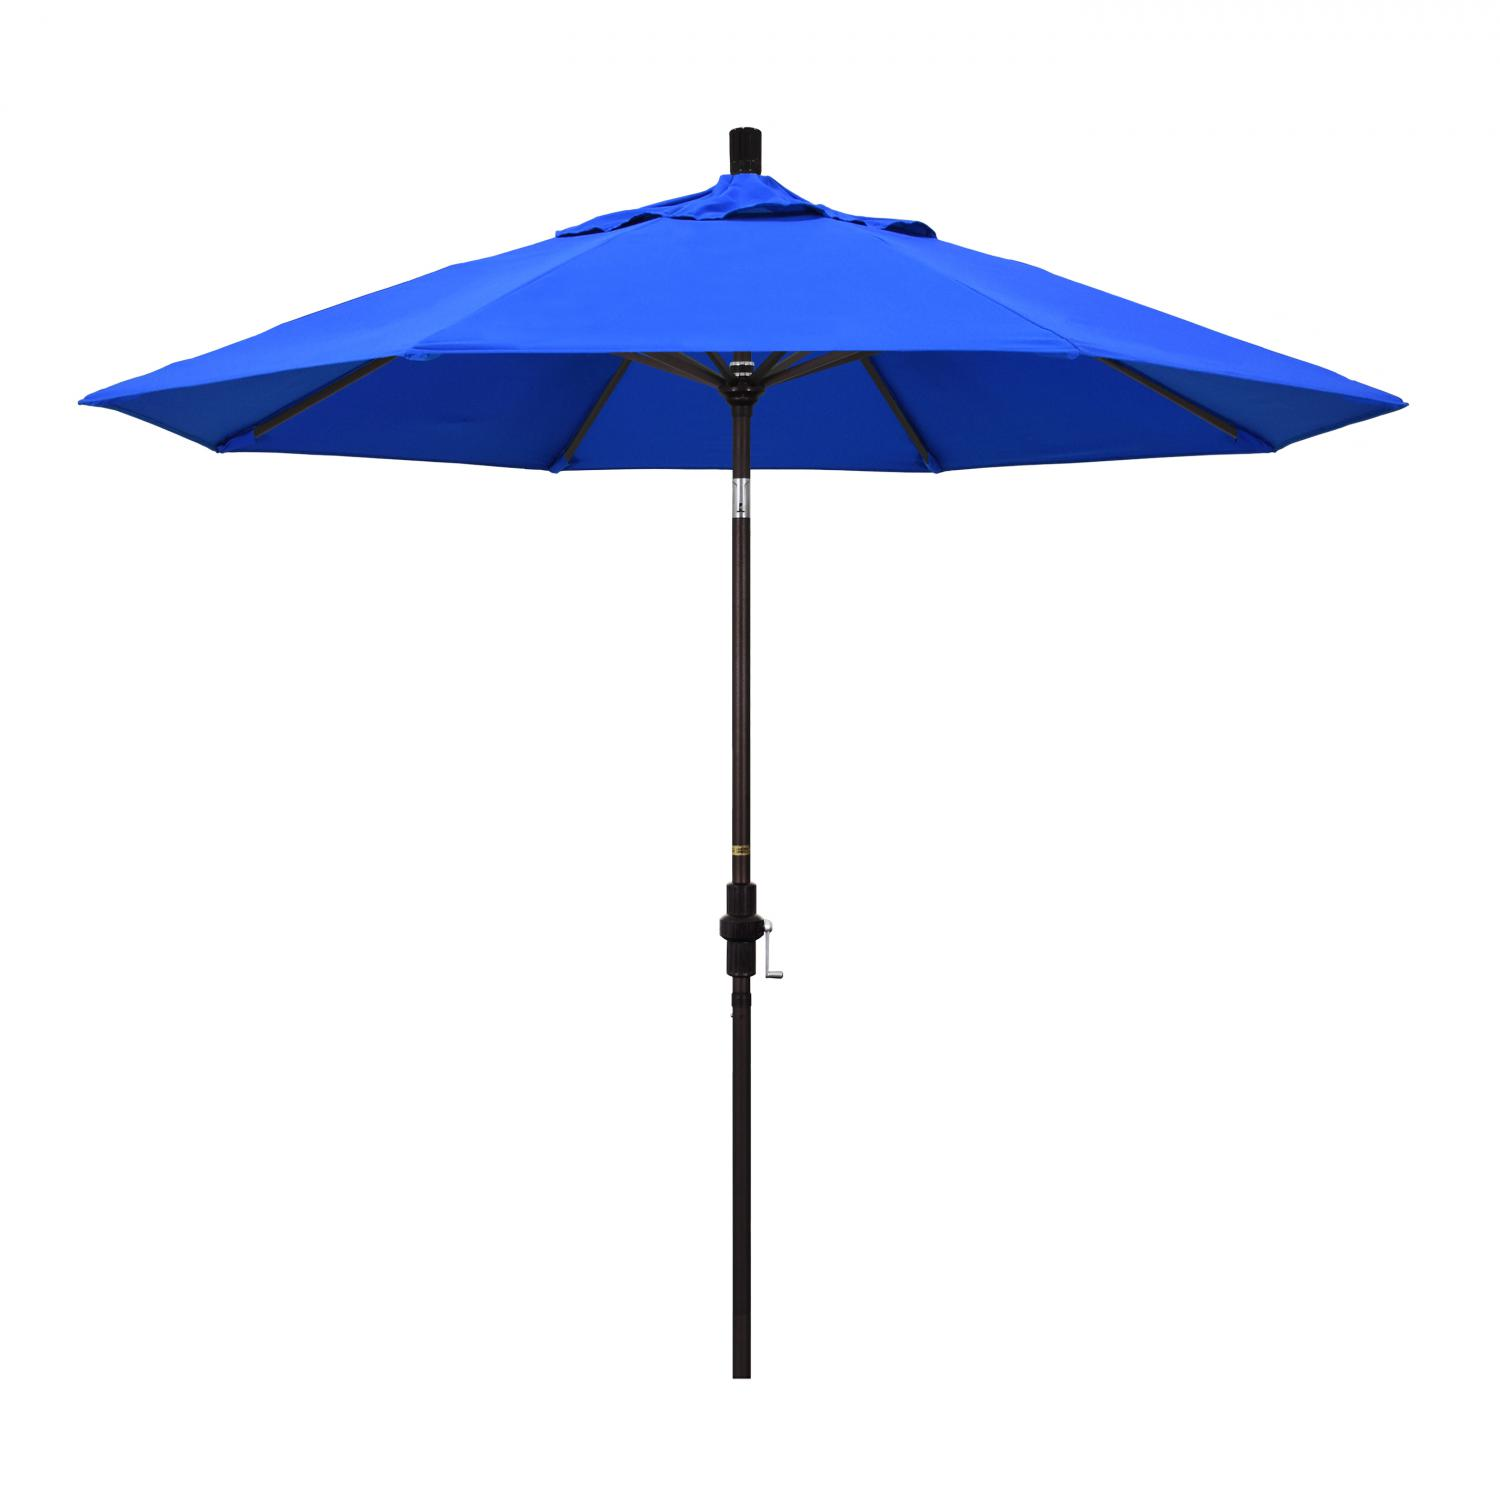 California Umbrella 9 Ft. Octagonal Aluminum Collar Tilt Patio Umbrella W/ Crank Lift & Aluminum Ribs